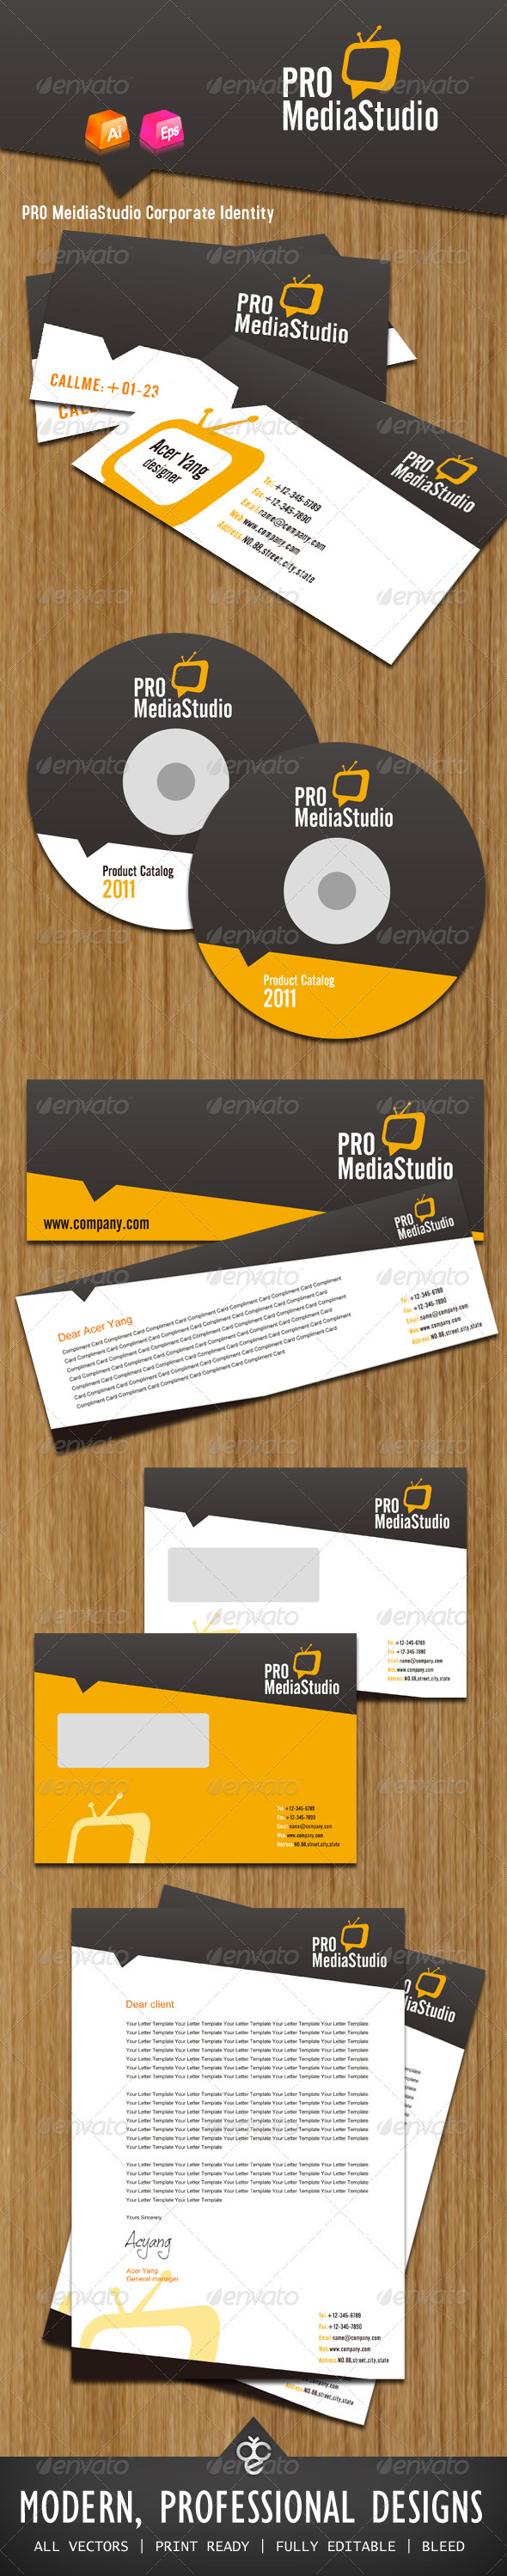 GraphicRiver PRO MeidiaStudio Corporate Identity 406107